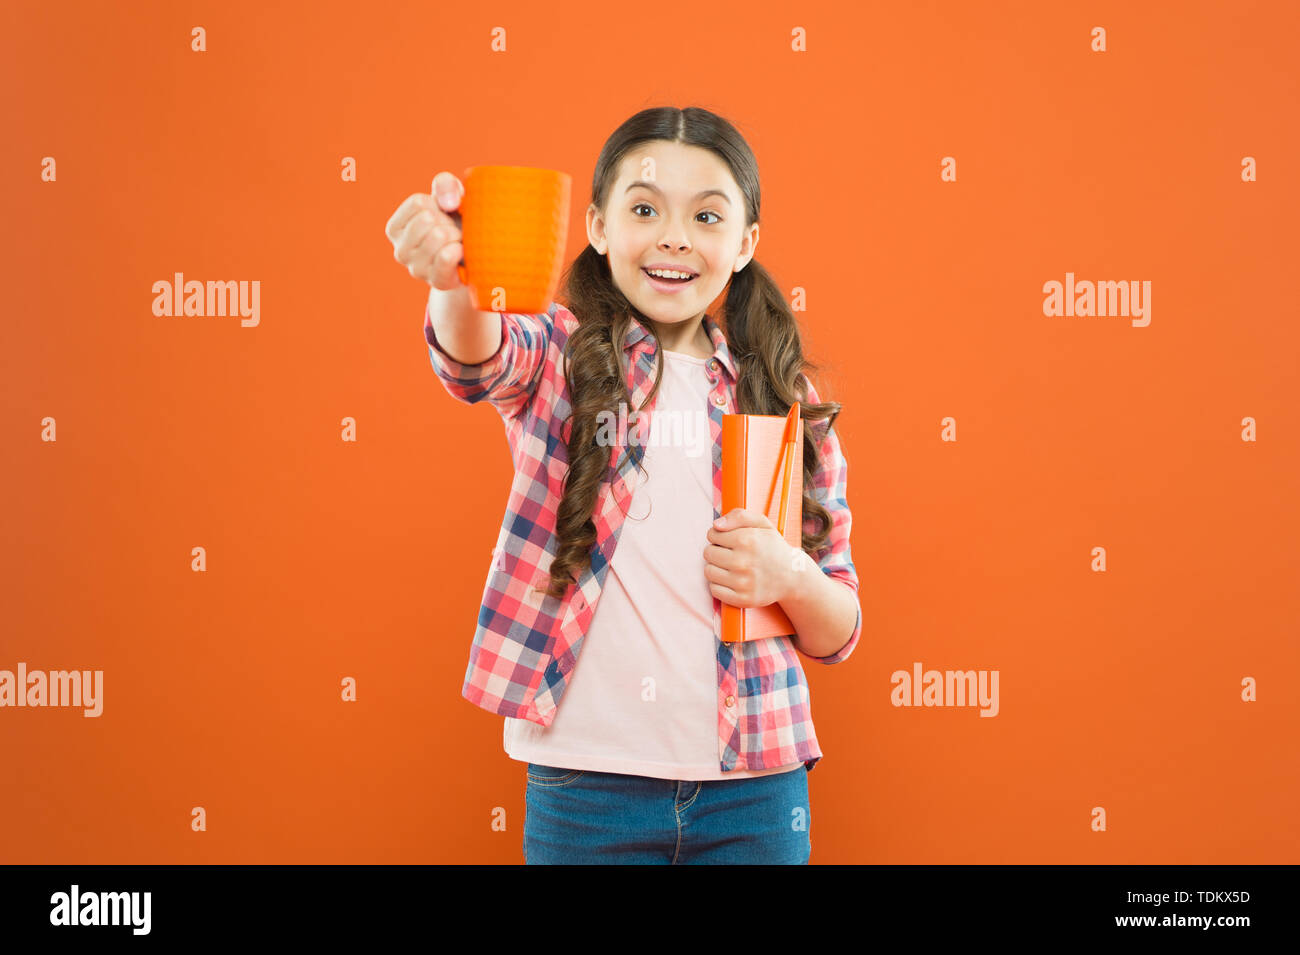 Help yourself. Cute schoolgirl enjoying school break on orange background. Little girl having tea break. Small child holding book and cup at meal break. Its break time. Stock Photo